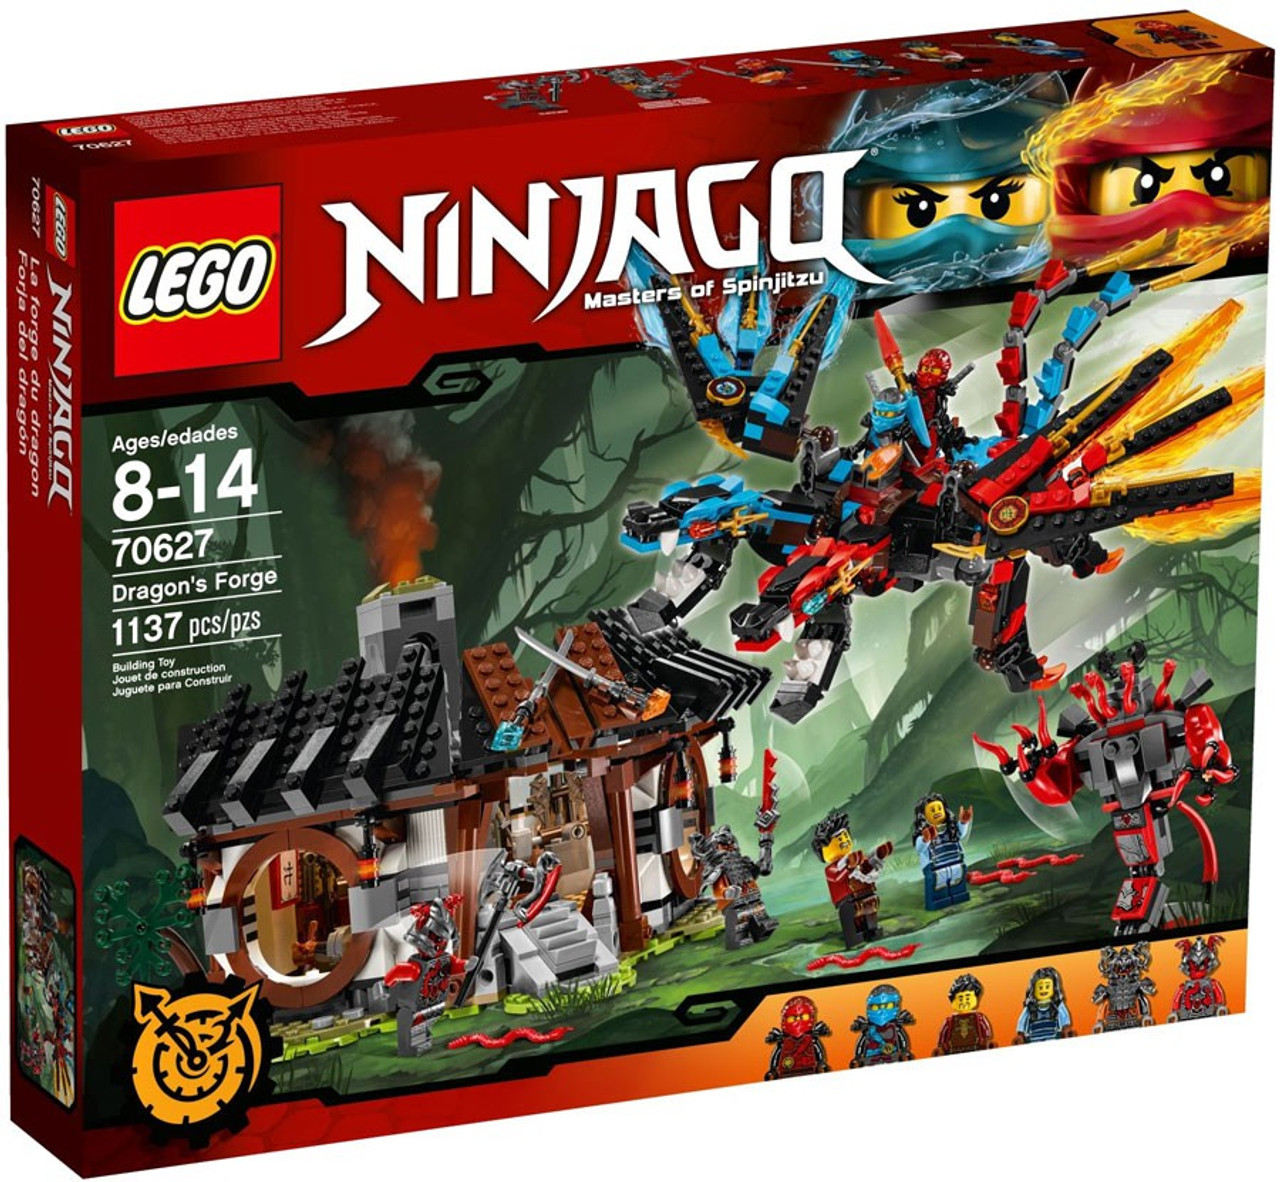 Lego Forge Set Toywiz 70627 Ninjago Dragons jq35AR4L